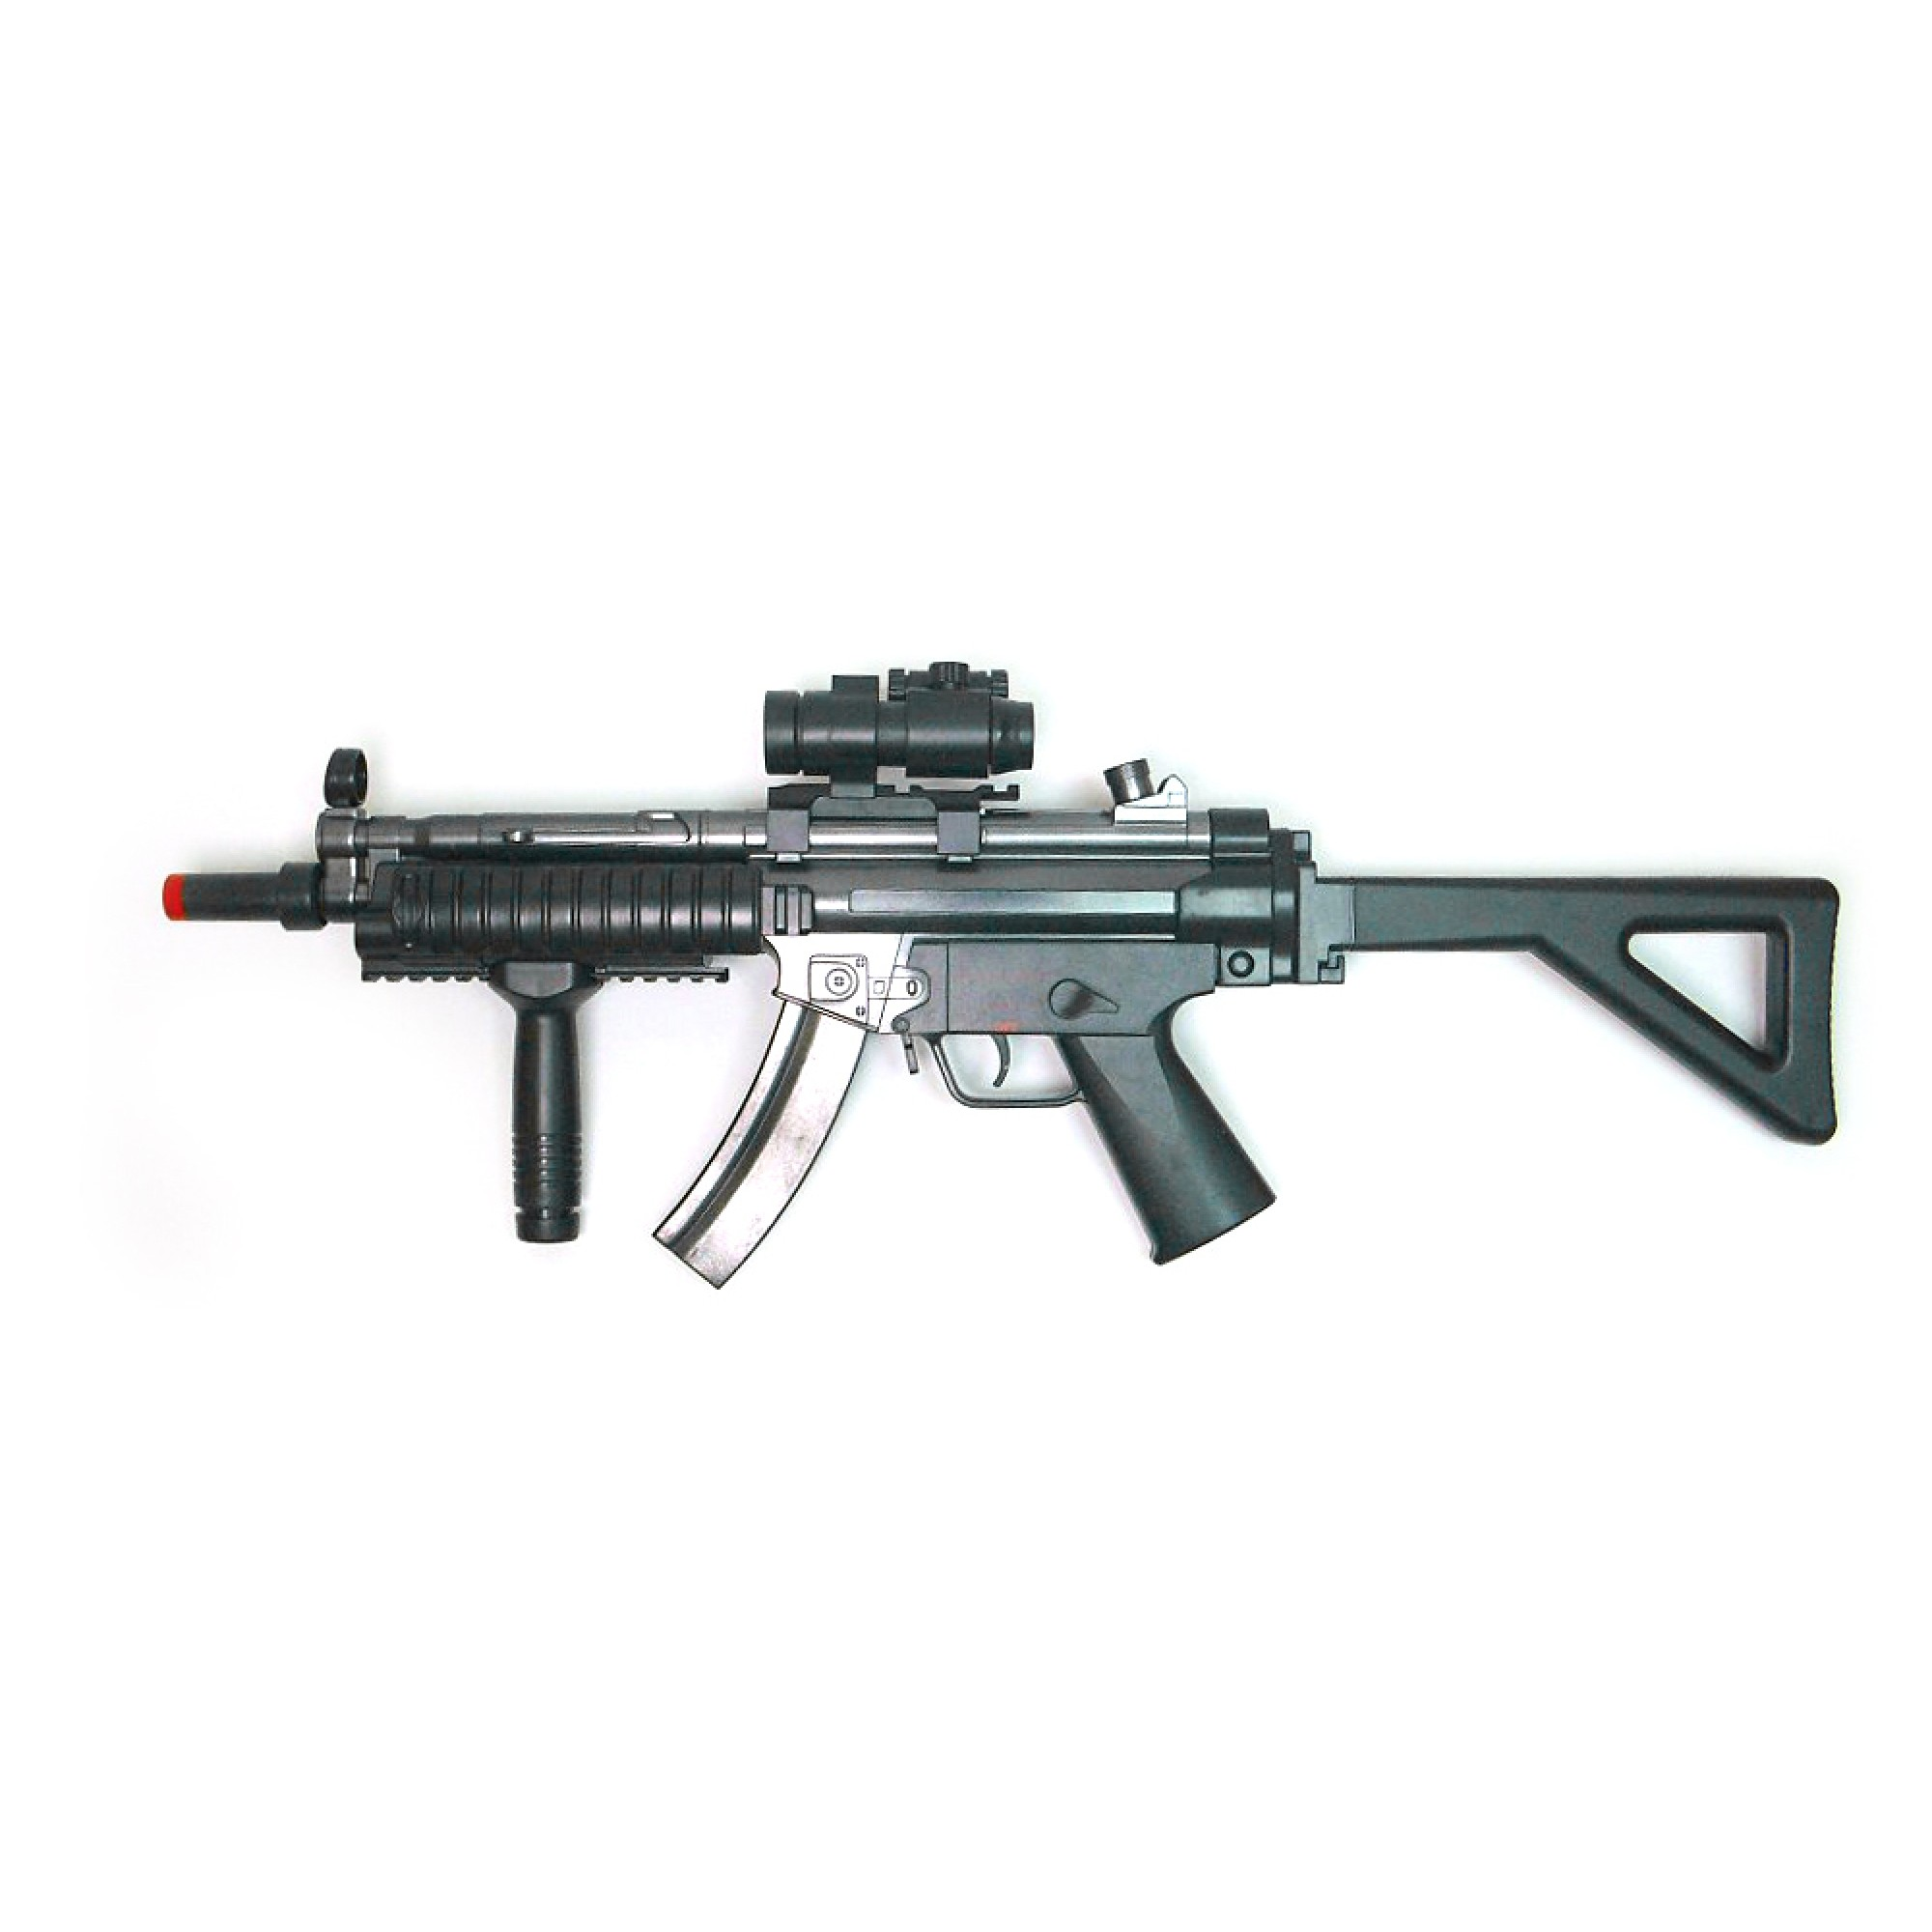 MP5 RAS W/Light, Sound, Vibration & Viewer